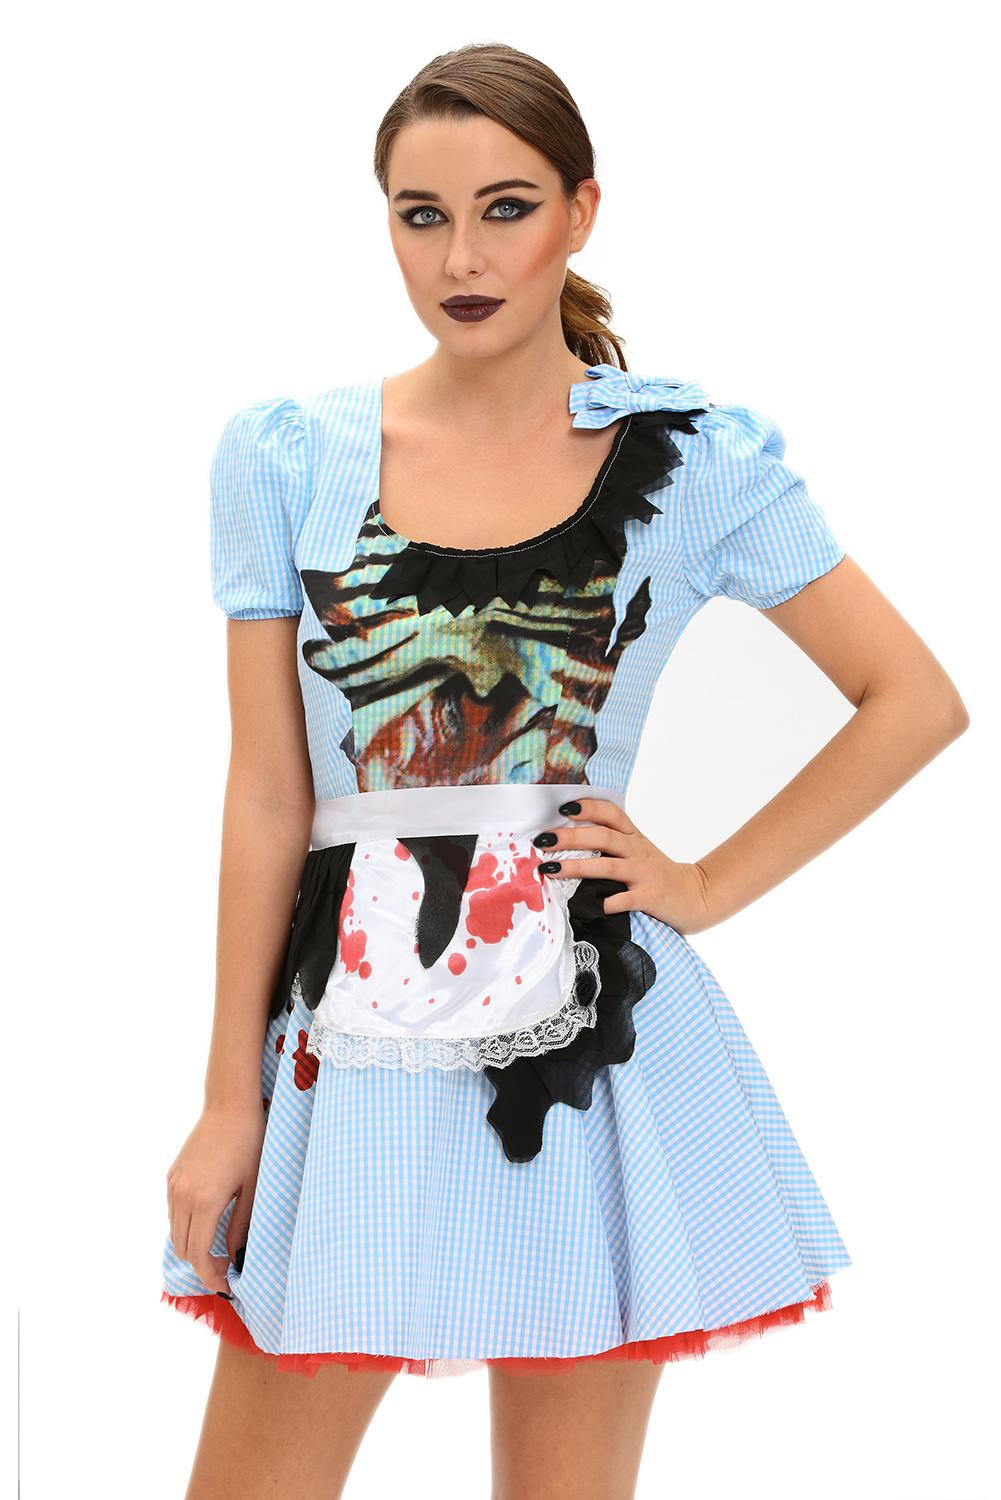 fashion stylish zombie kansas girl adult halloween costume 89011